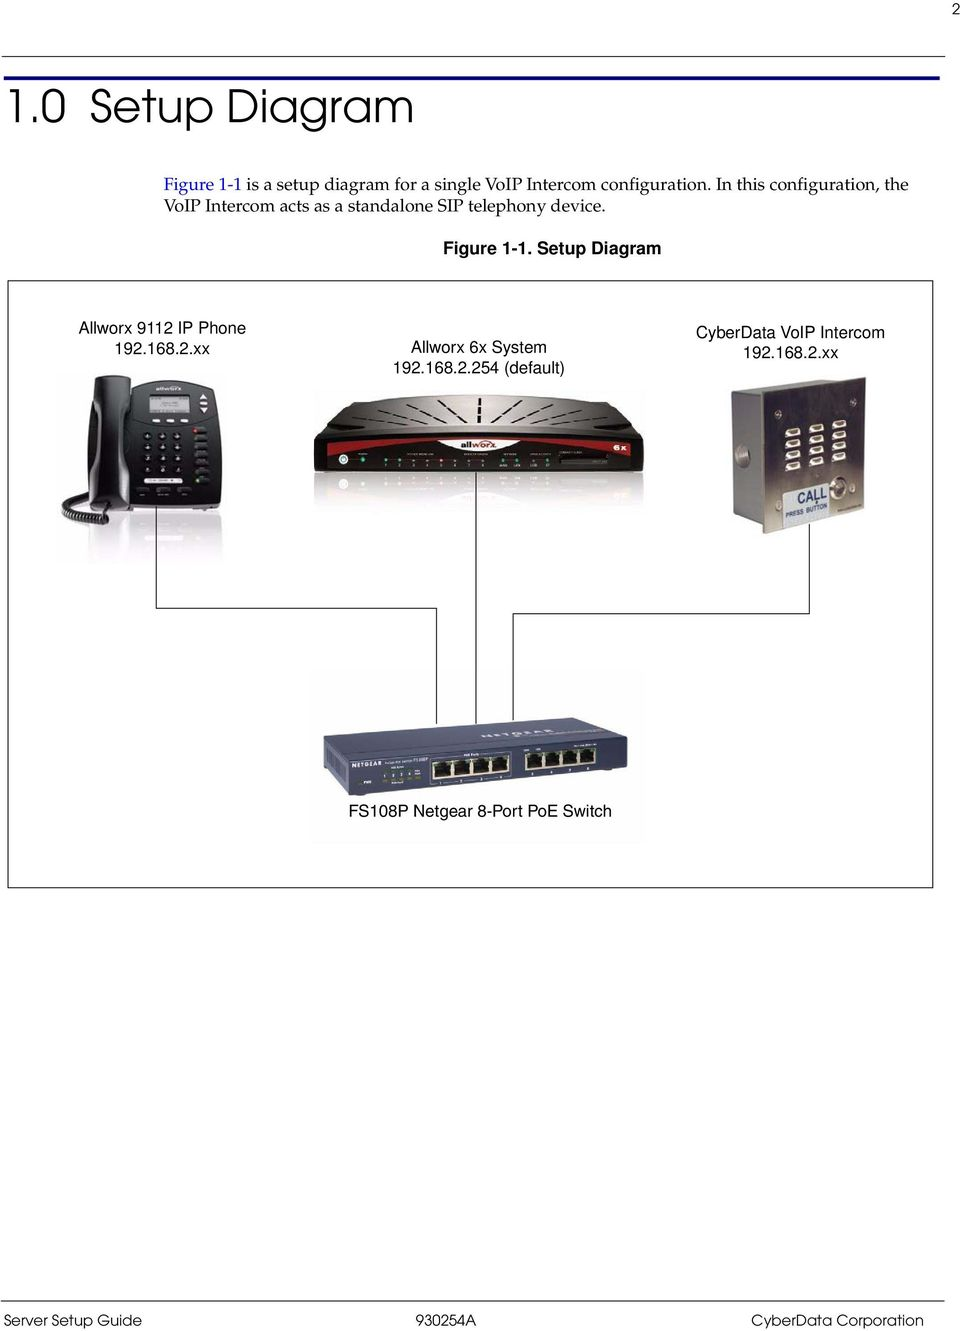 In this configuration, the VoIP Intercom acts as a standalone SIP telephony device.